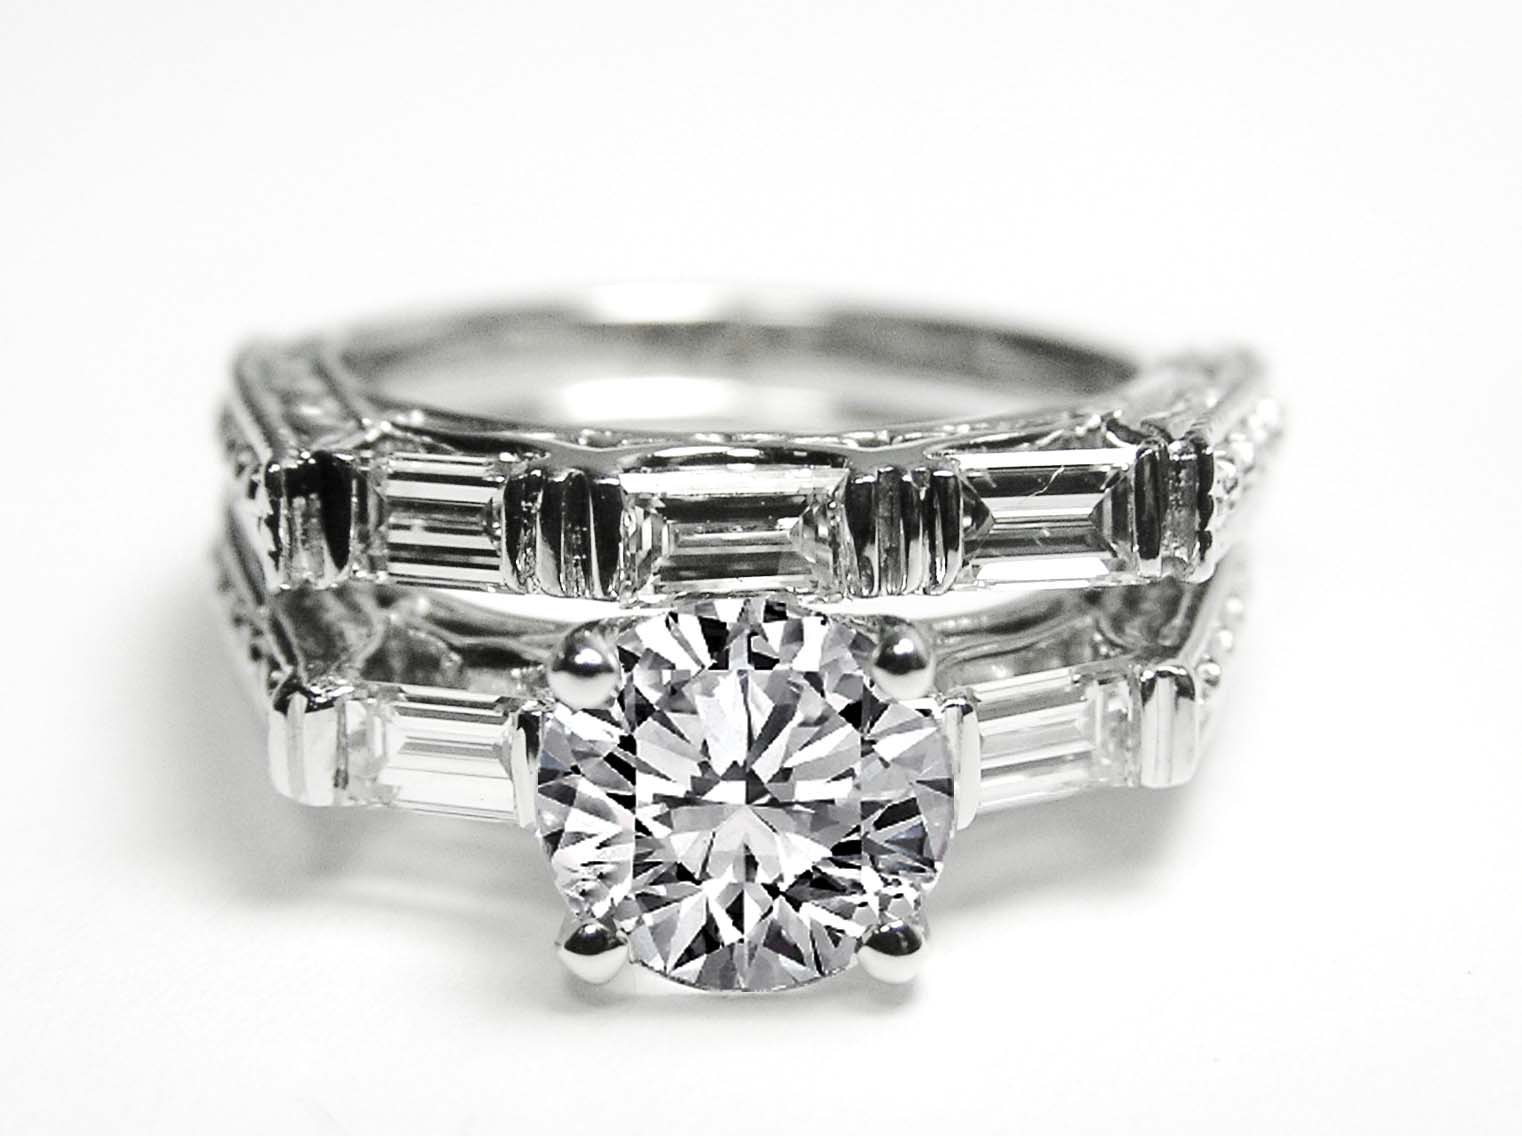 Engagement Ring Diamond Engagement Ring With Tapered Baguette Diamond  Accents & Matching Wedding Band, 055 Tcw In 14k White Goldes614wgbs